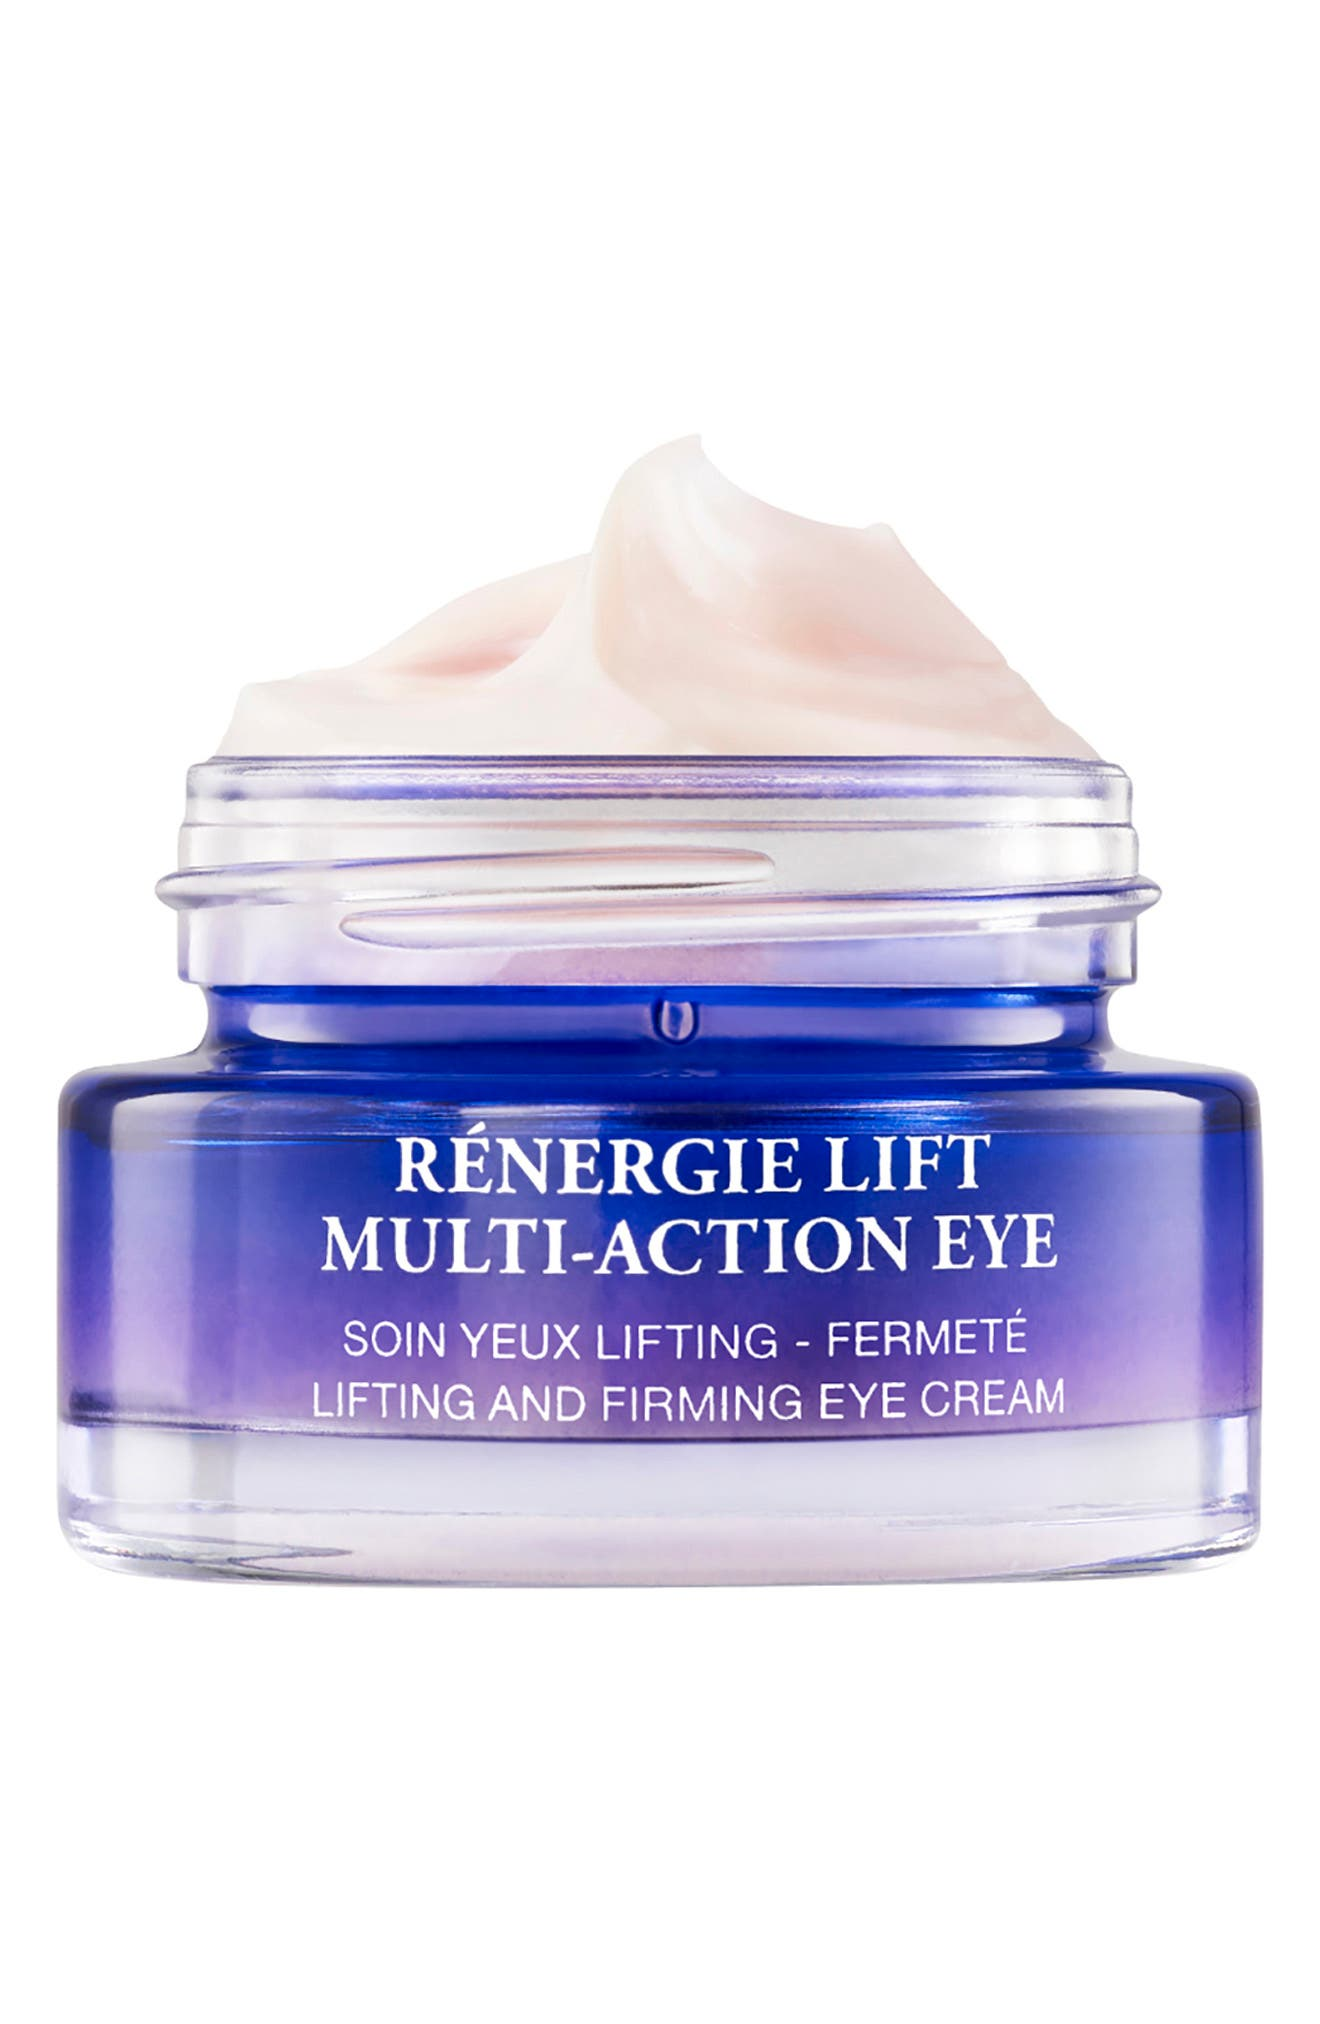 Rénergie Lift Multi-Action Lifting and Firming Eye Cream   Nordstrom